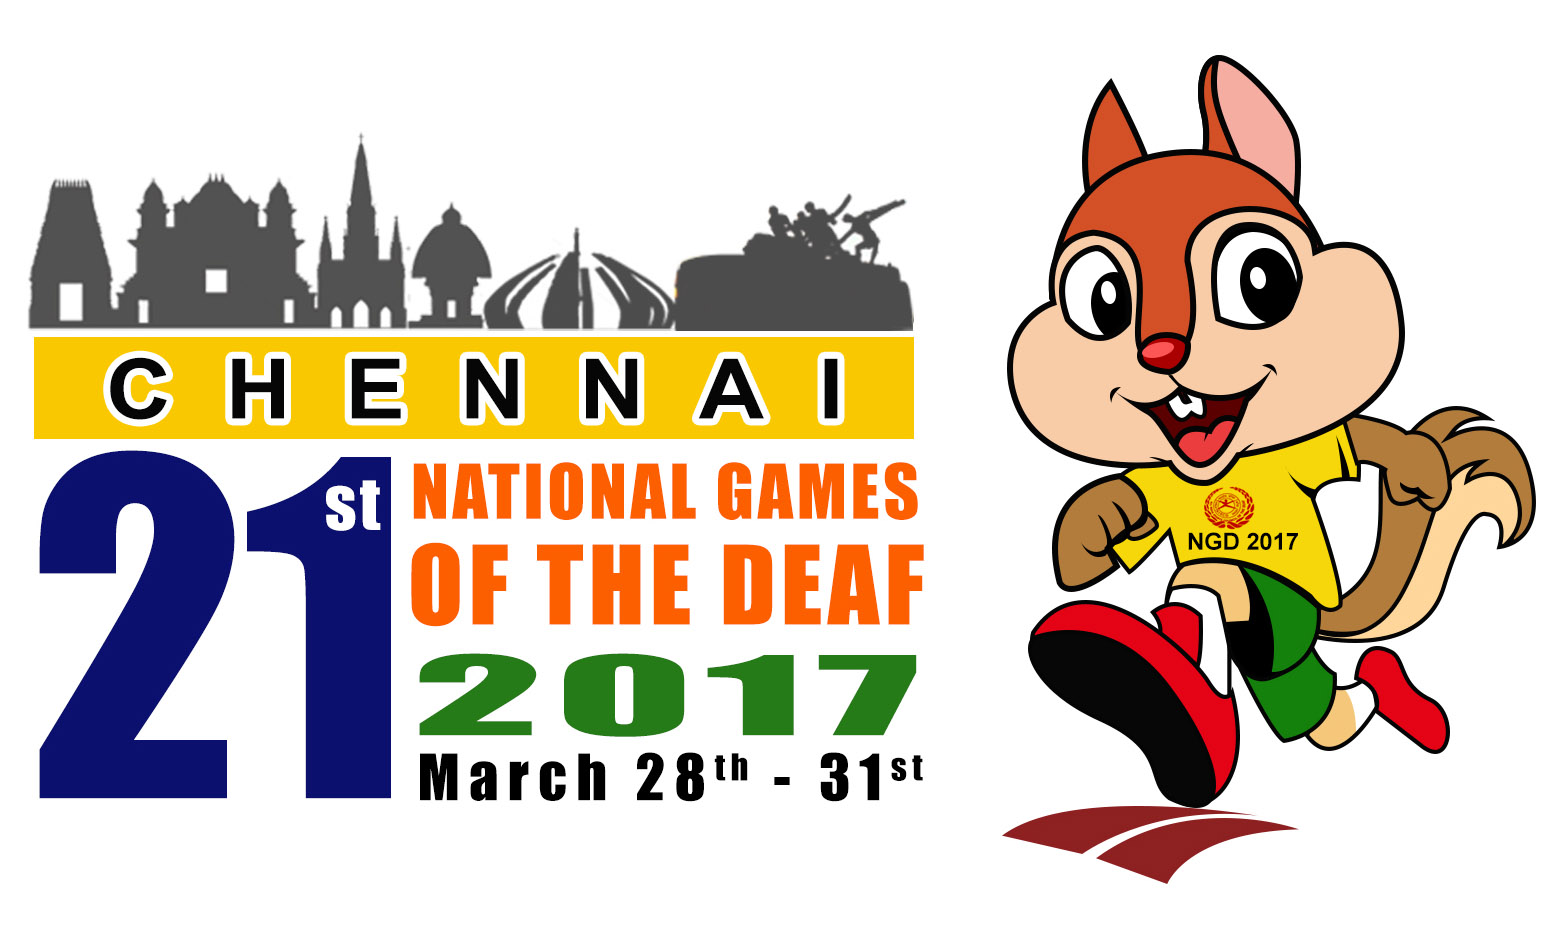 21st National Games of the Deaf